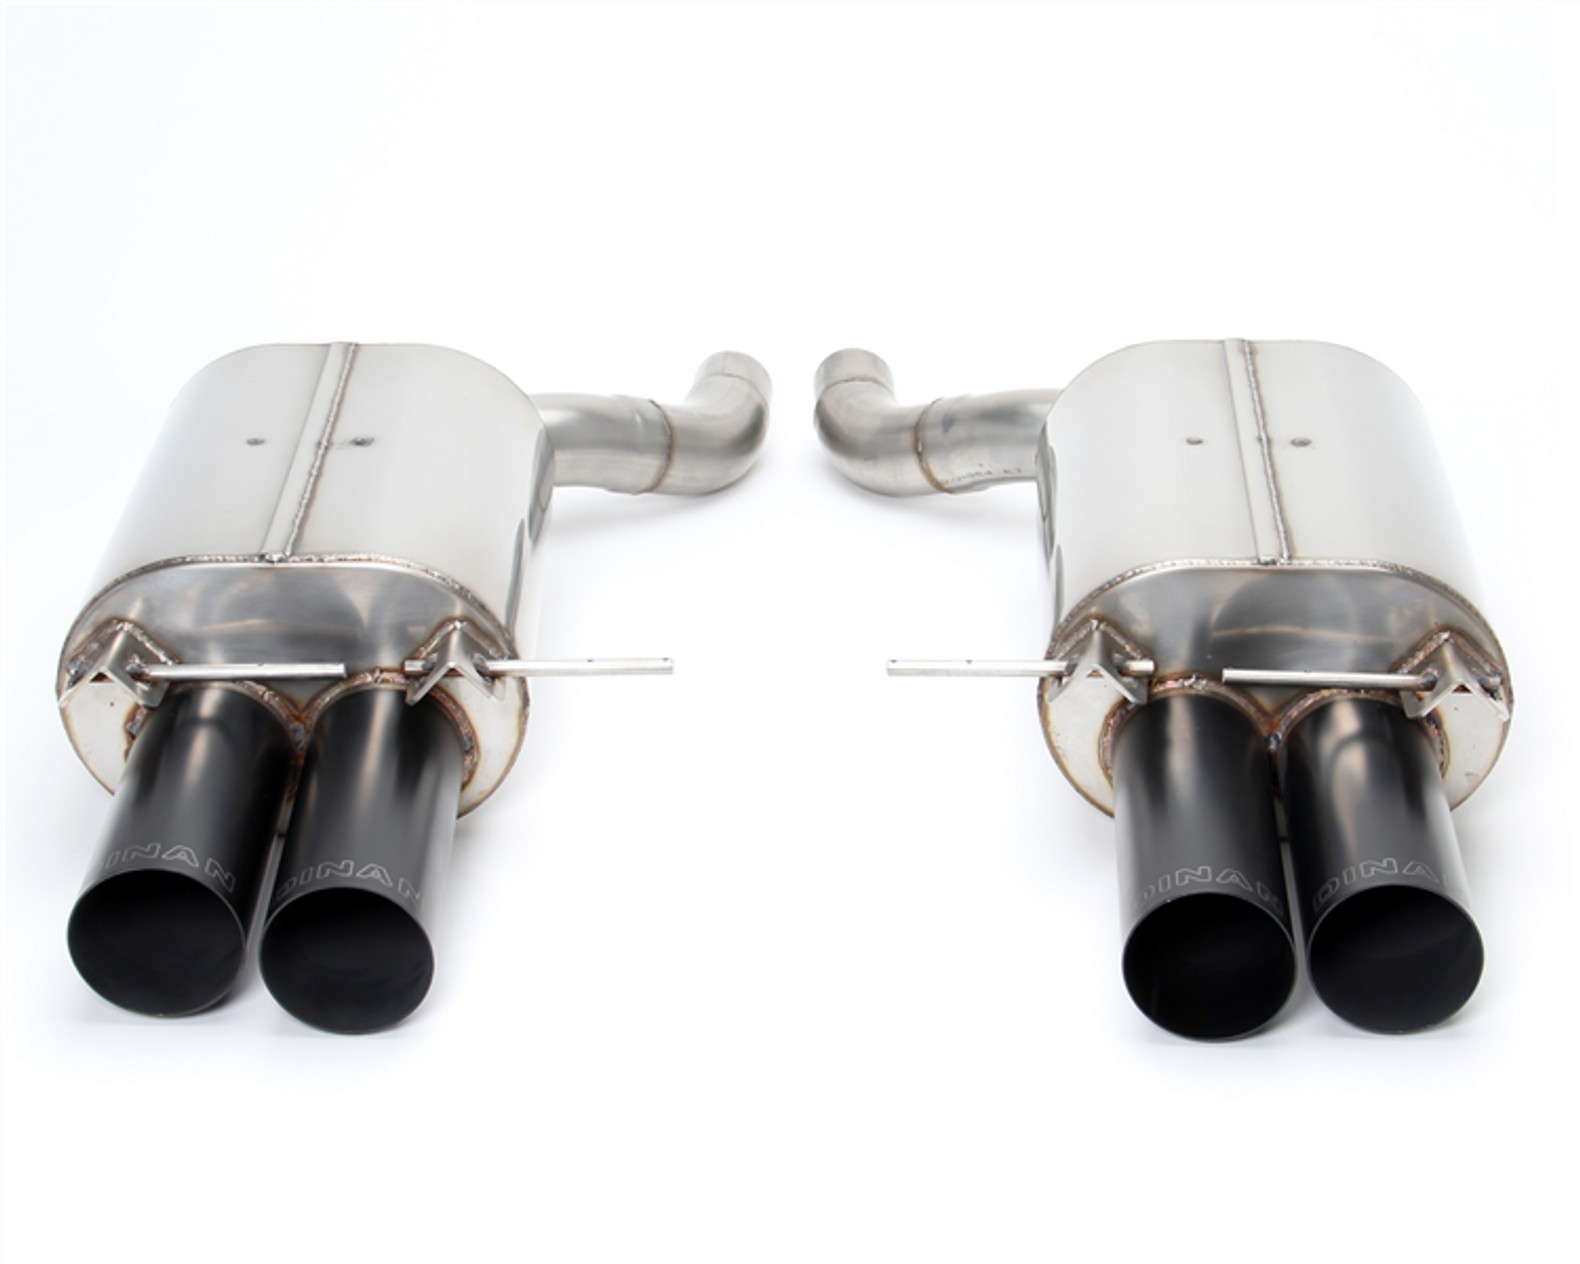 Dinan Free Flow Exhaust With Black Tips For Bmw M5 E60 2006 2010 Performance M Bmw Mini Performance Parts Specialists